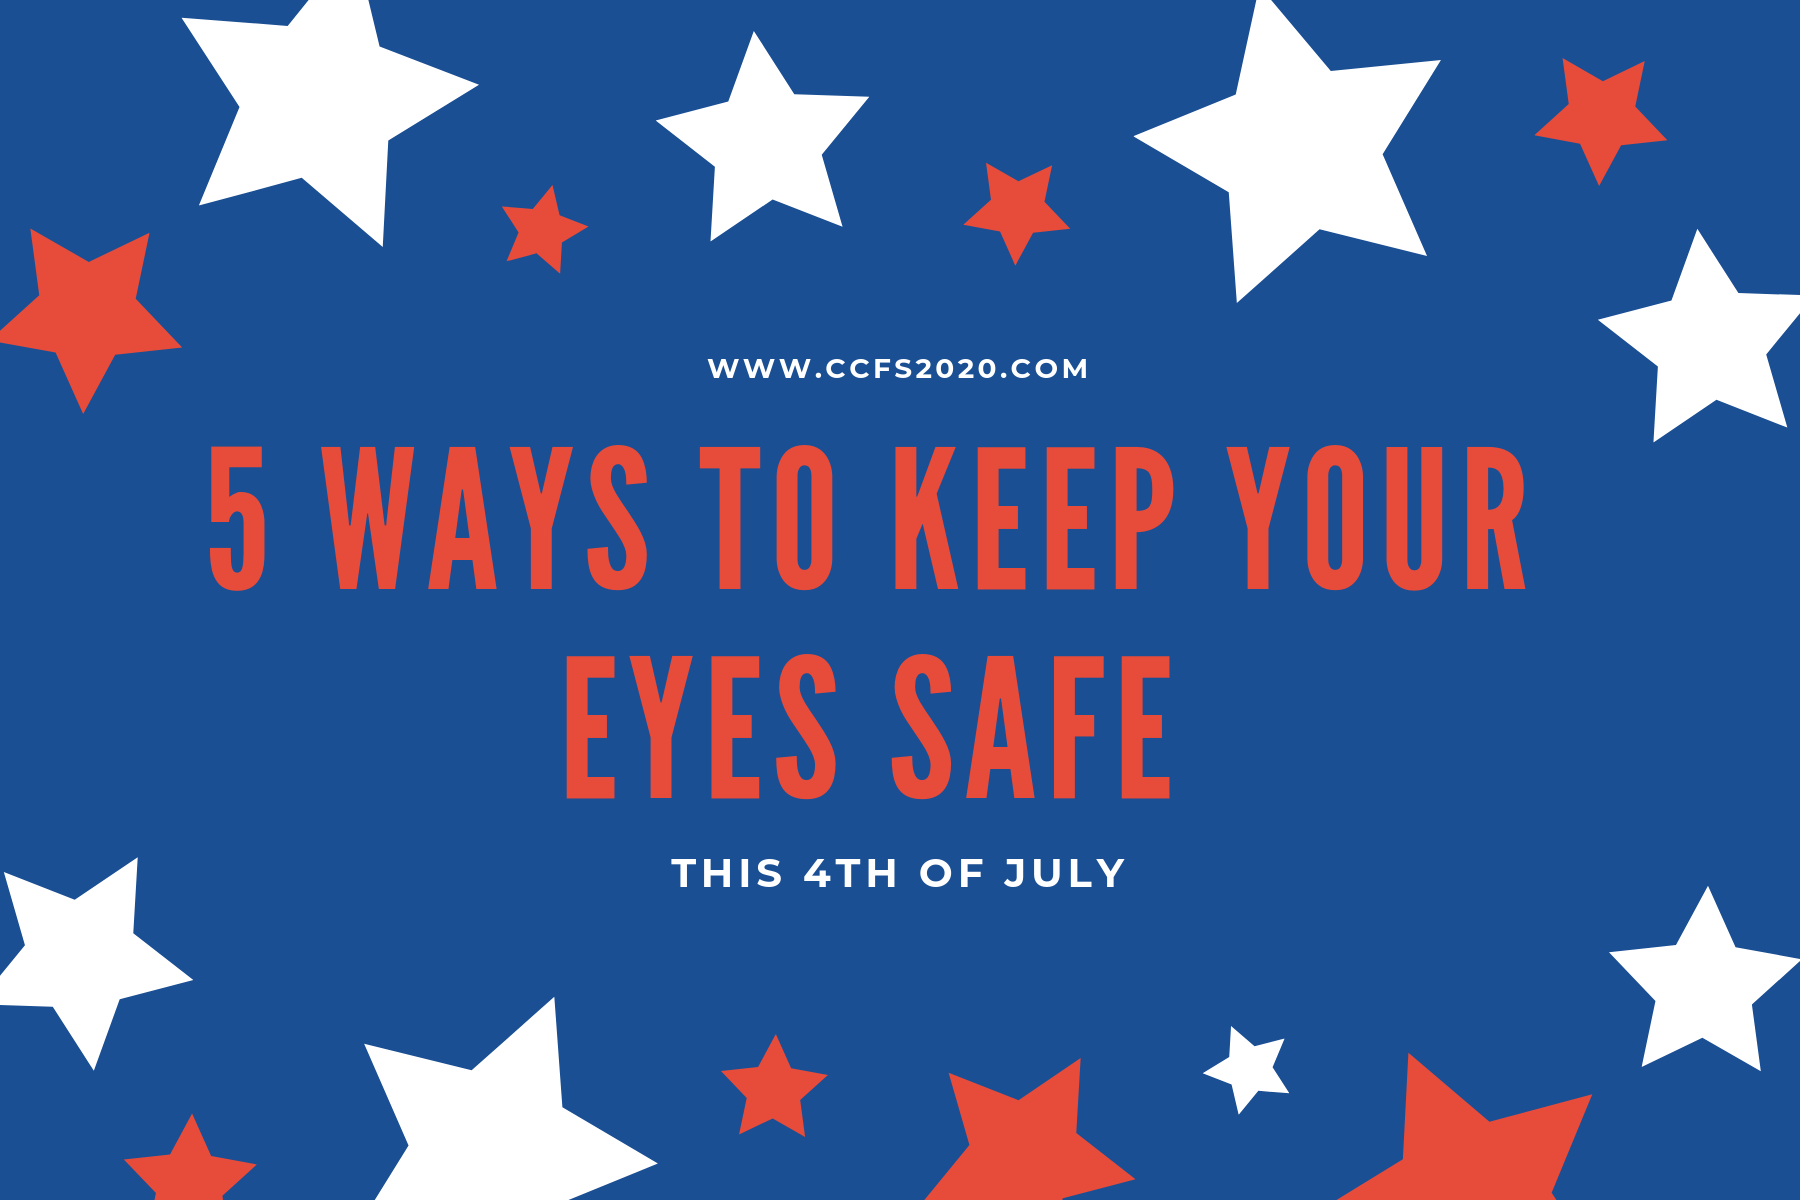 5 Ways to Keep Your Eyes Safe This 4th of July